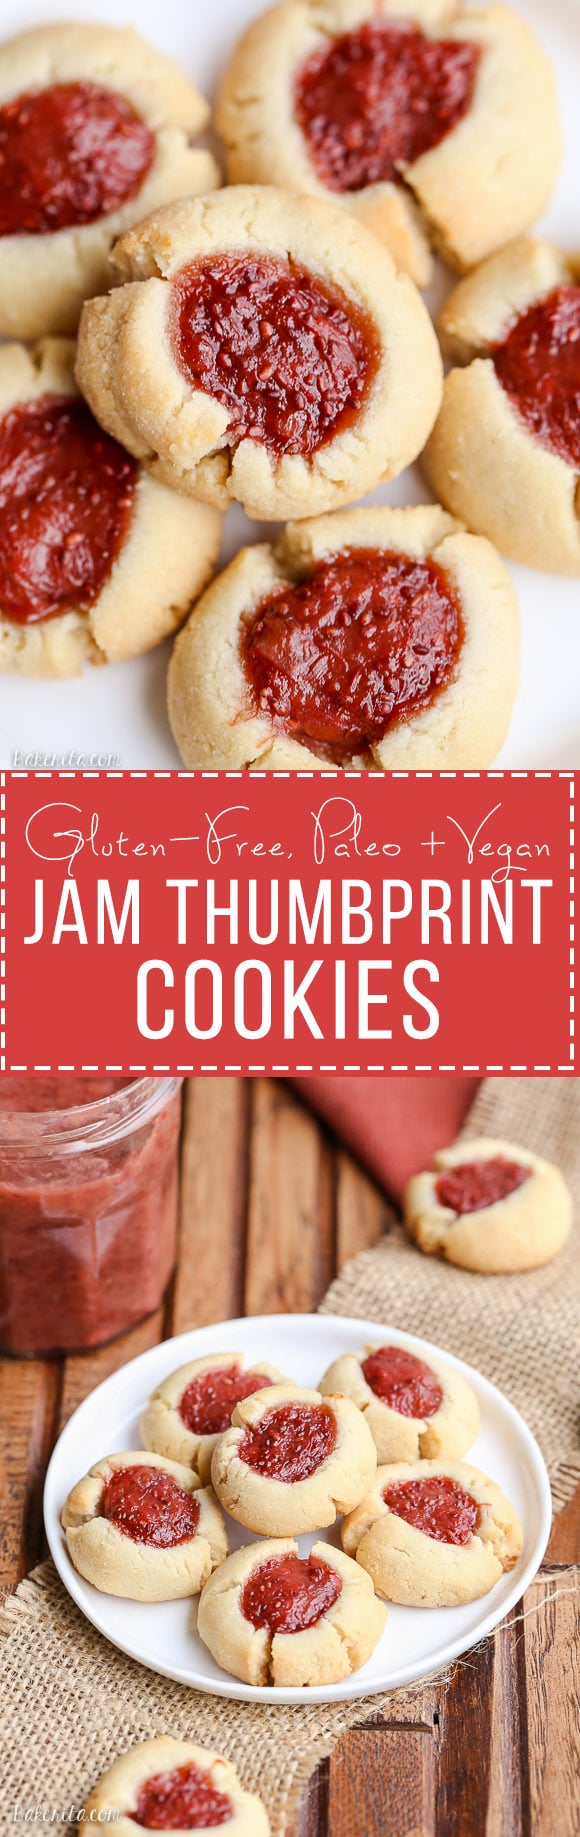 These Jam Thumbprint Cookies are a simple and delicious cookie made with only four ingredients! You won't be able to have just one of these gluten-free, vegan, and Paleo-friendly cookies.